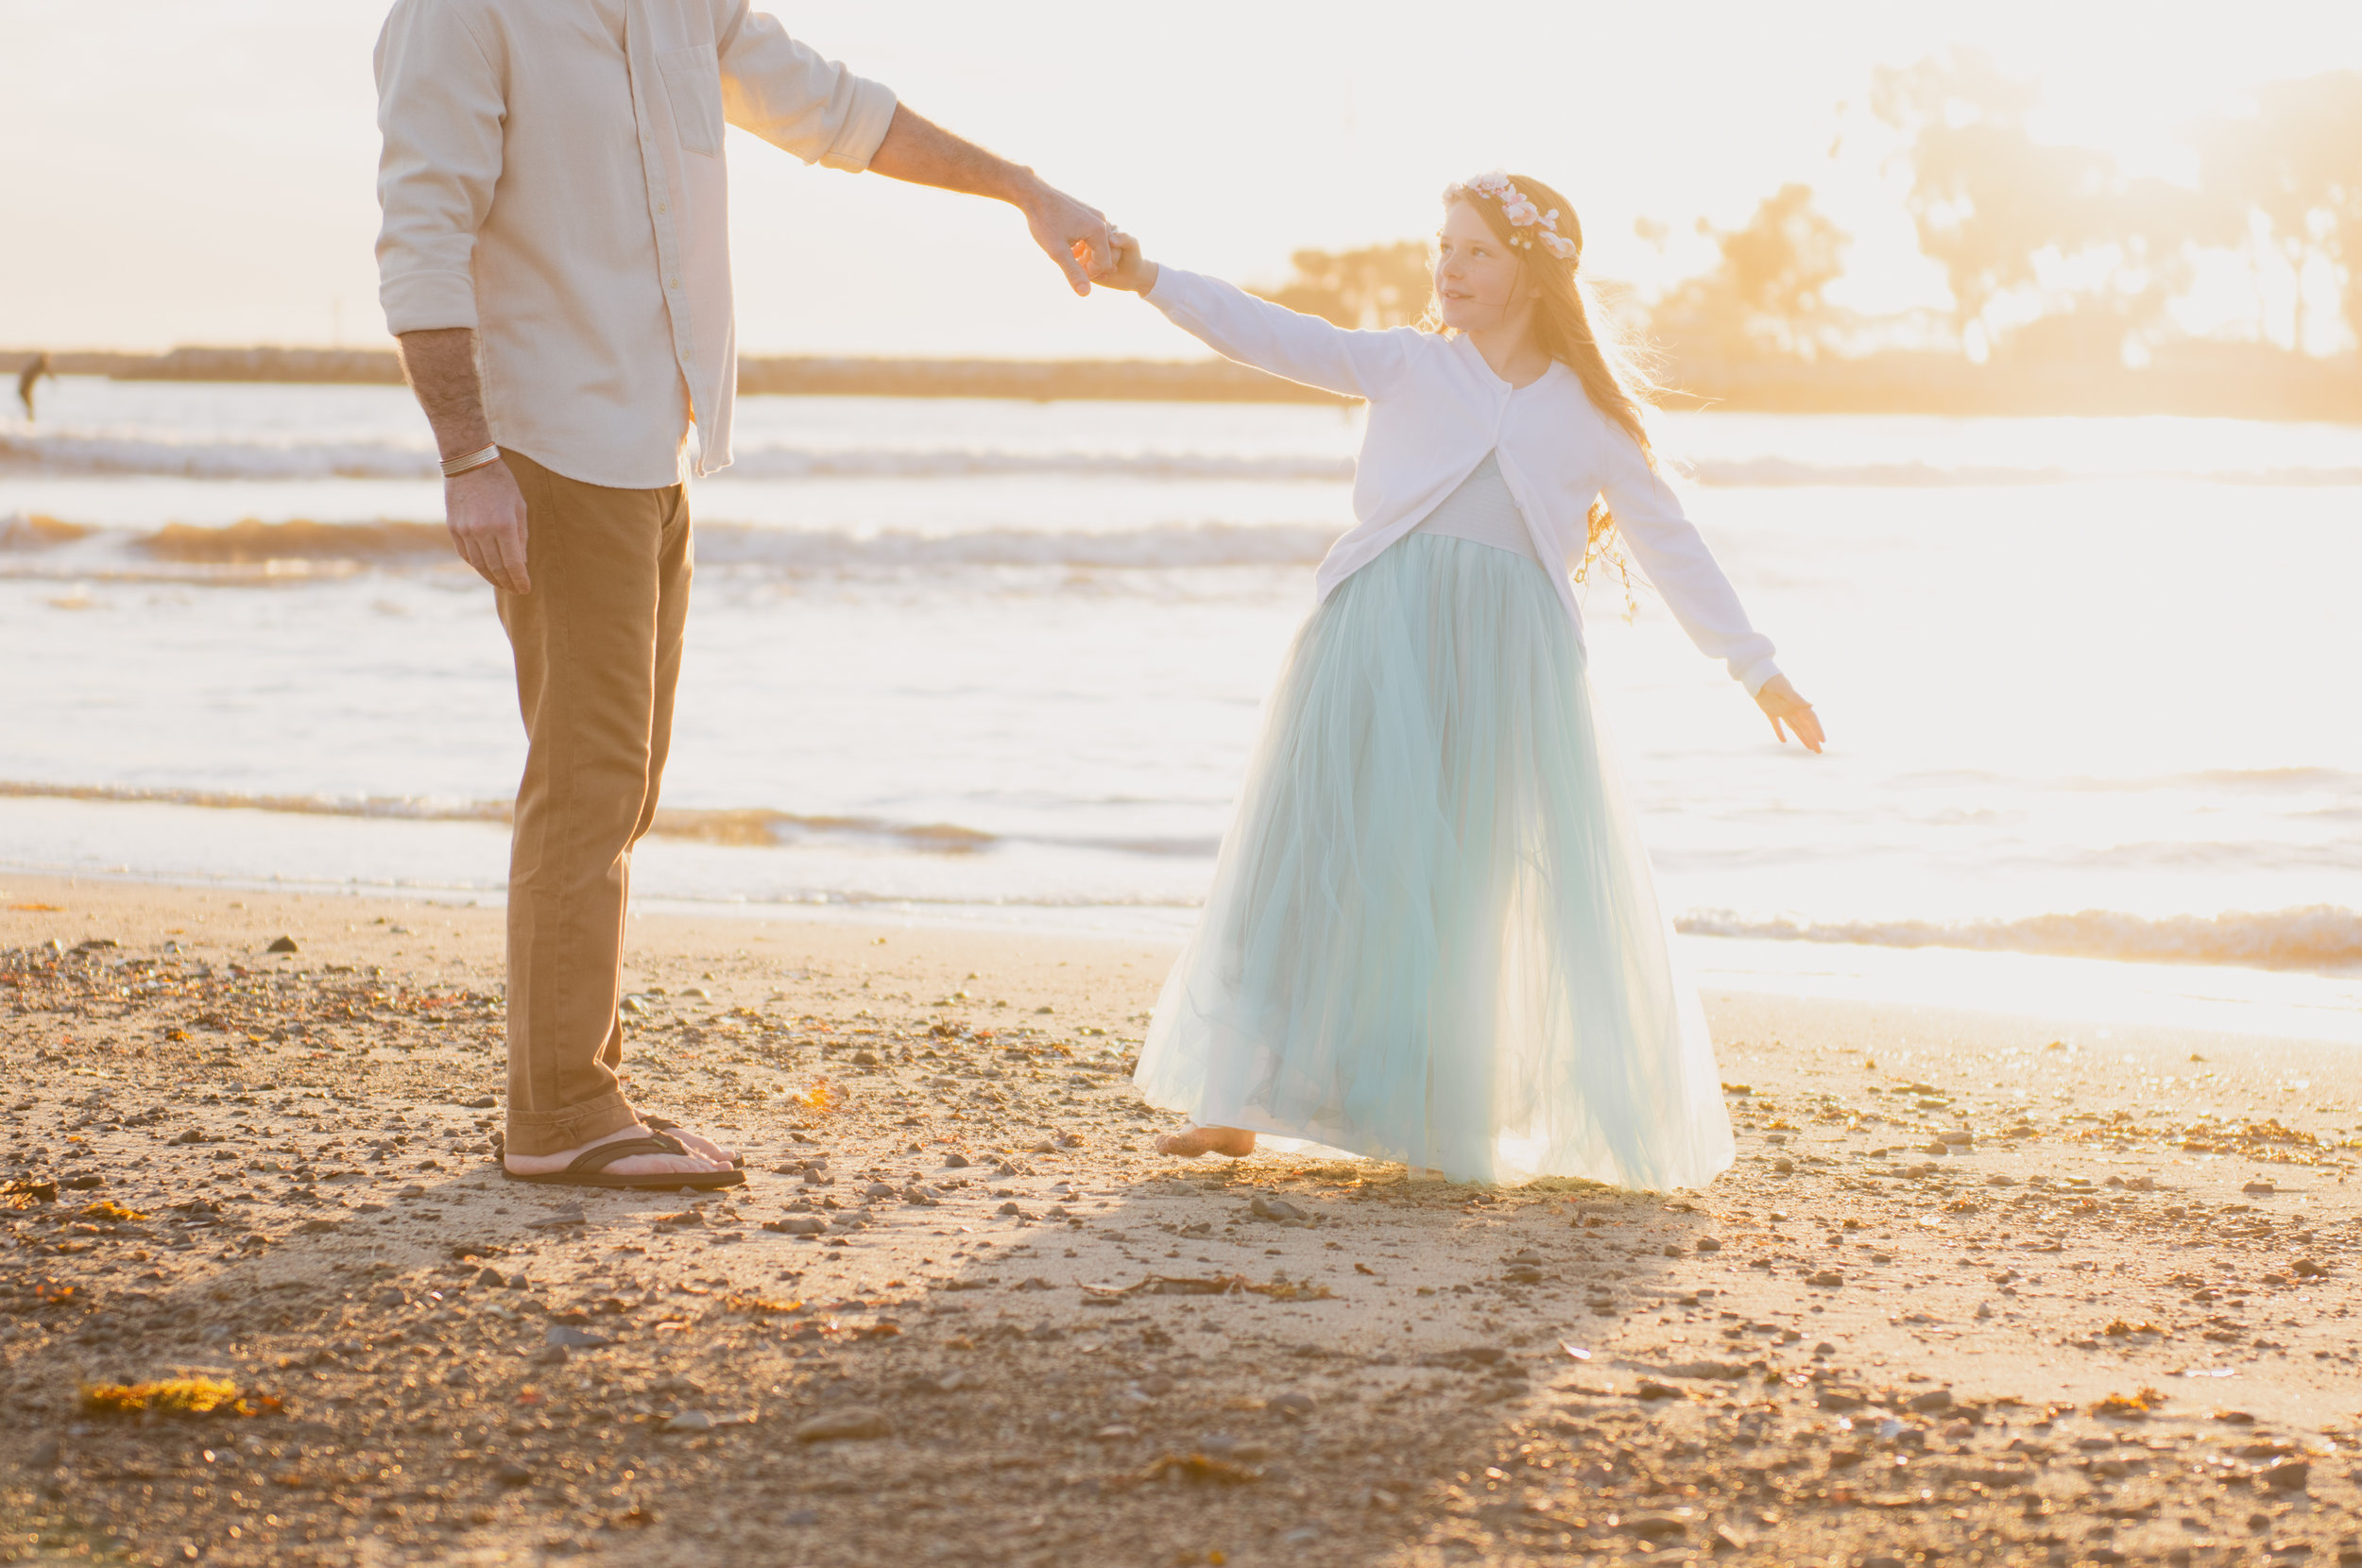 Daddy & daughter dance on the beach